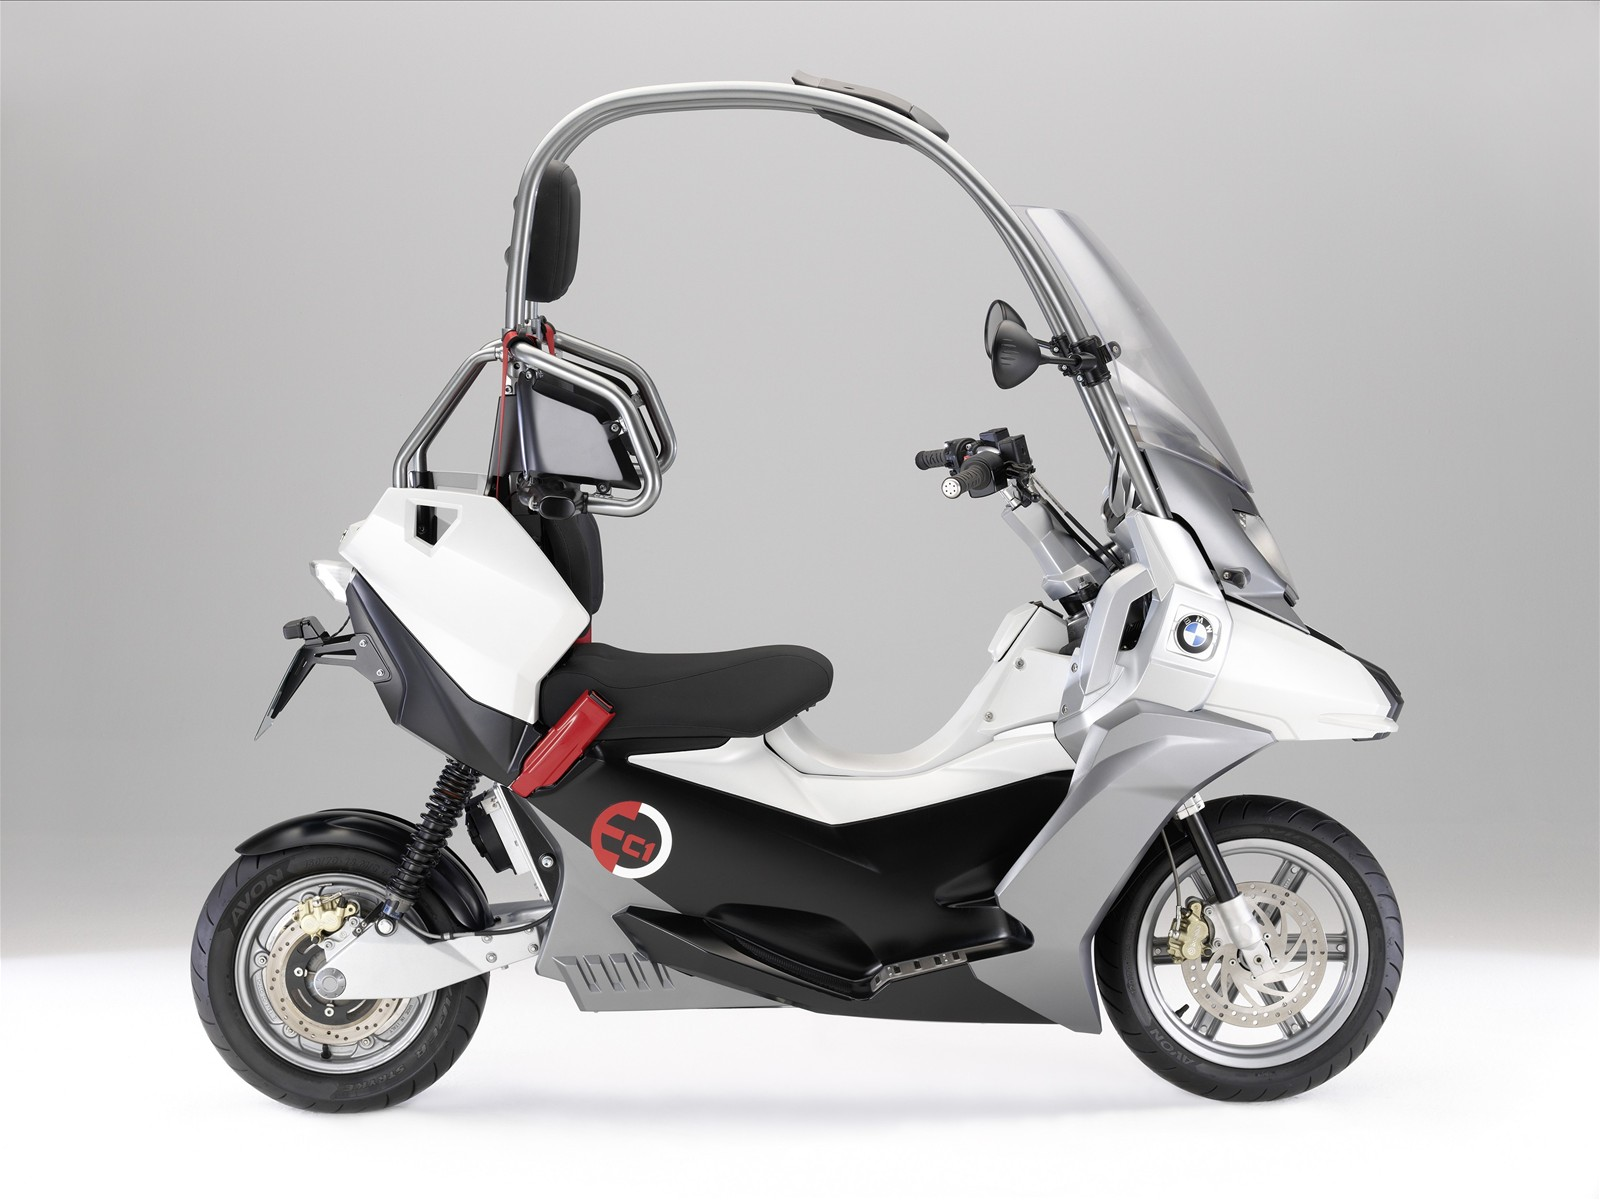 2009 Bmw C1 E Concept Scooter Pictures Accident Lawyers Info